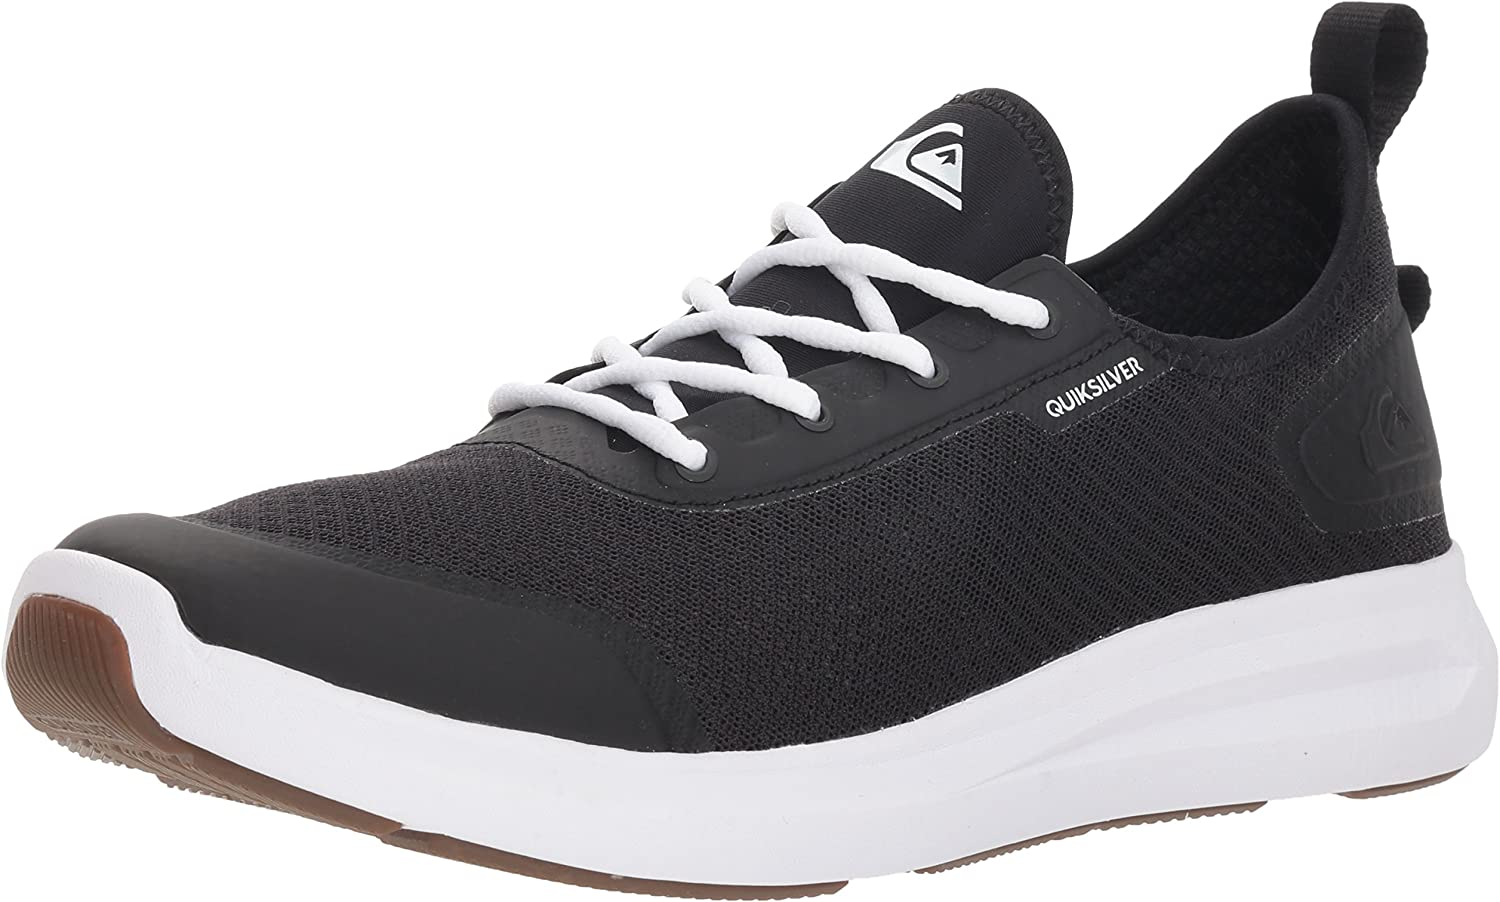 Quiksilver Mens AQYS700043 Layover Travel shoes